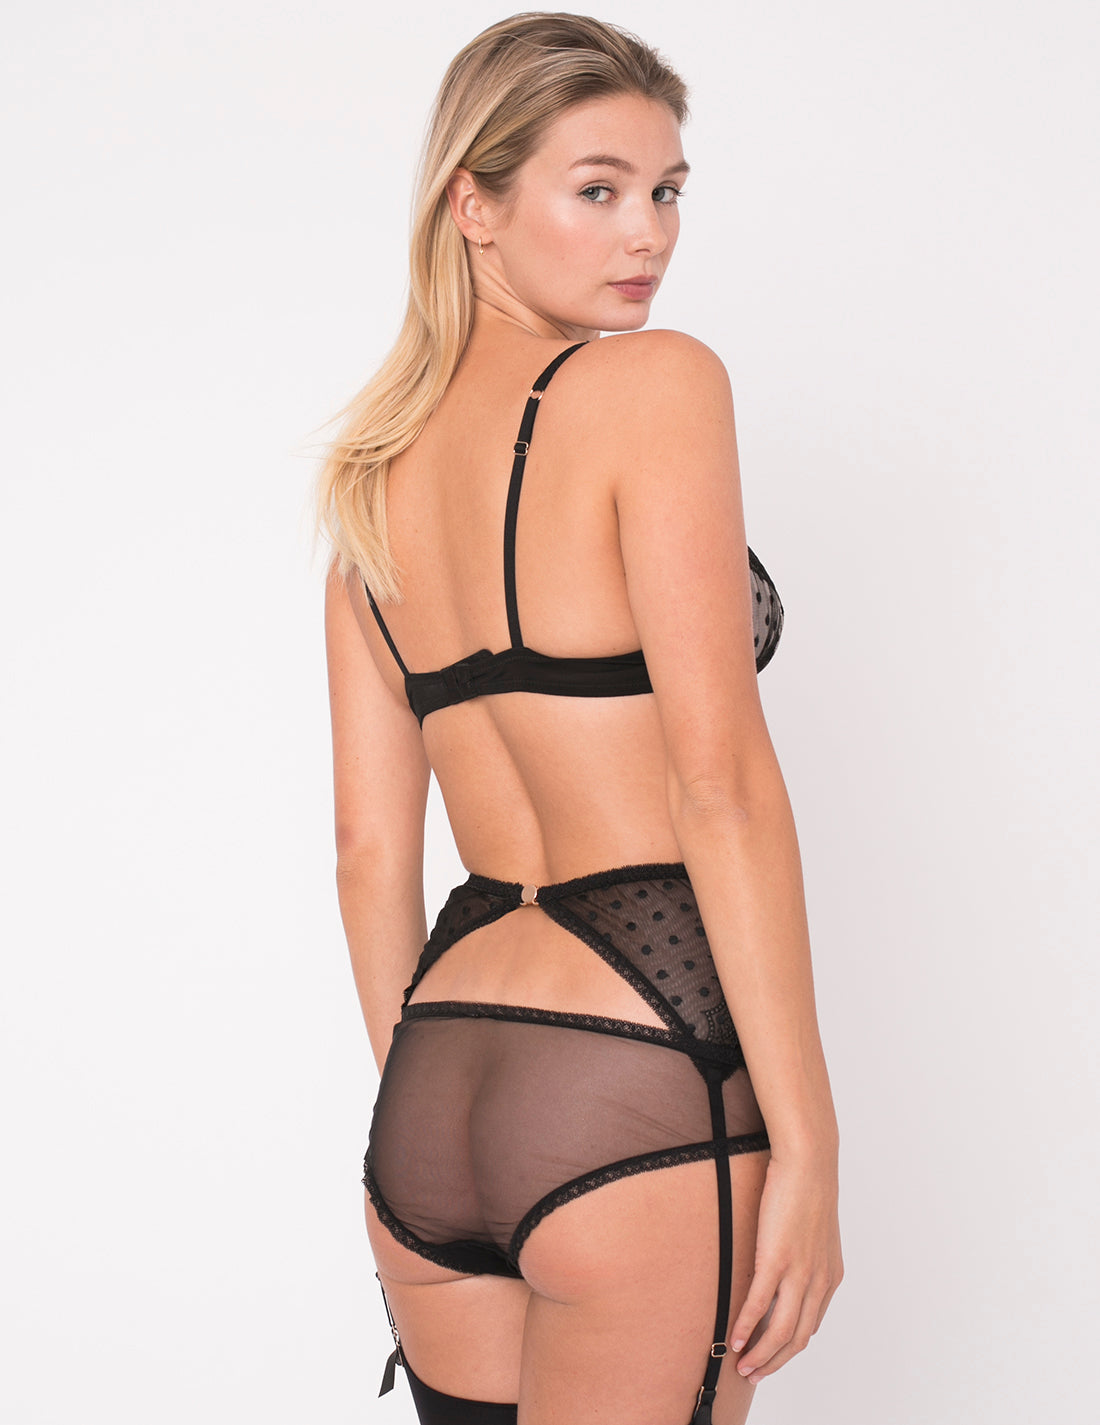 Schwarze Spitze Polka Dot Slip Slips | Mimi Holliday Luxus Dessous